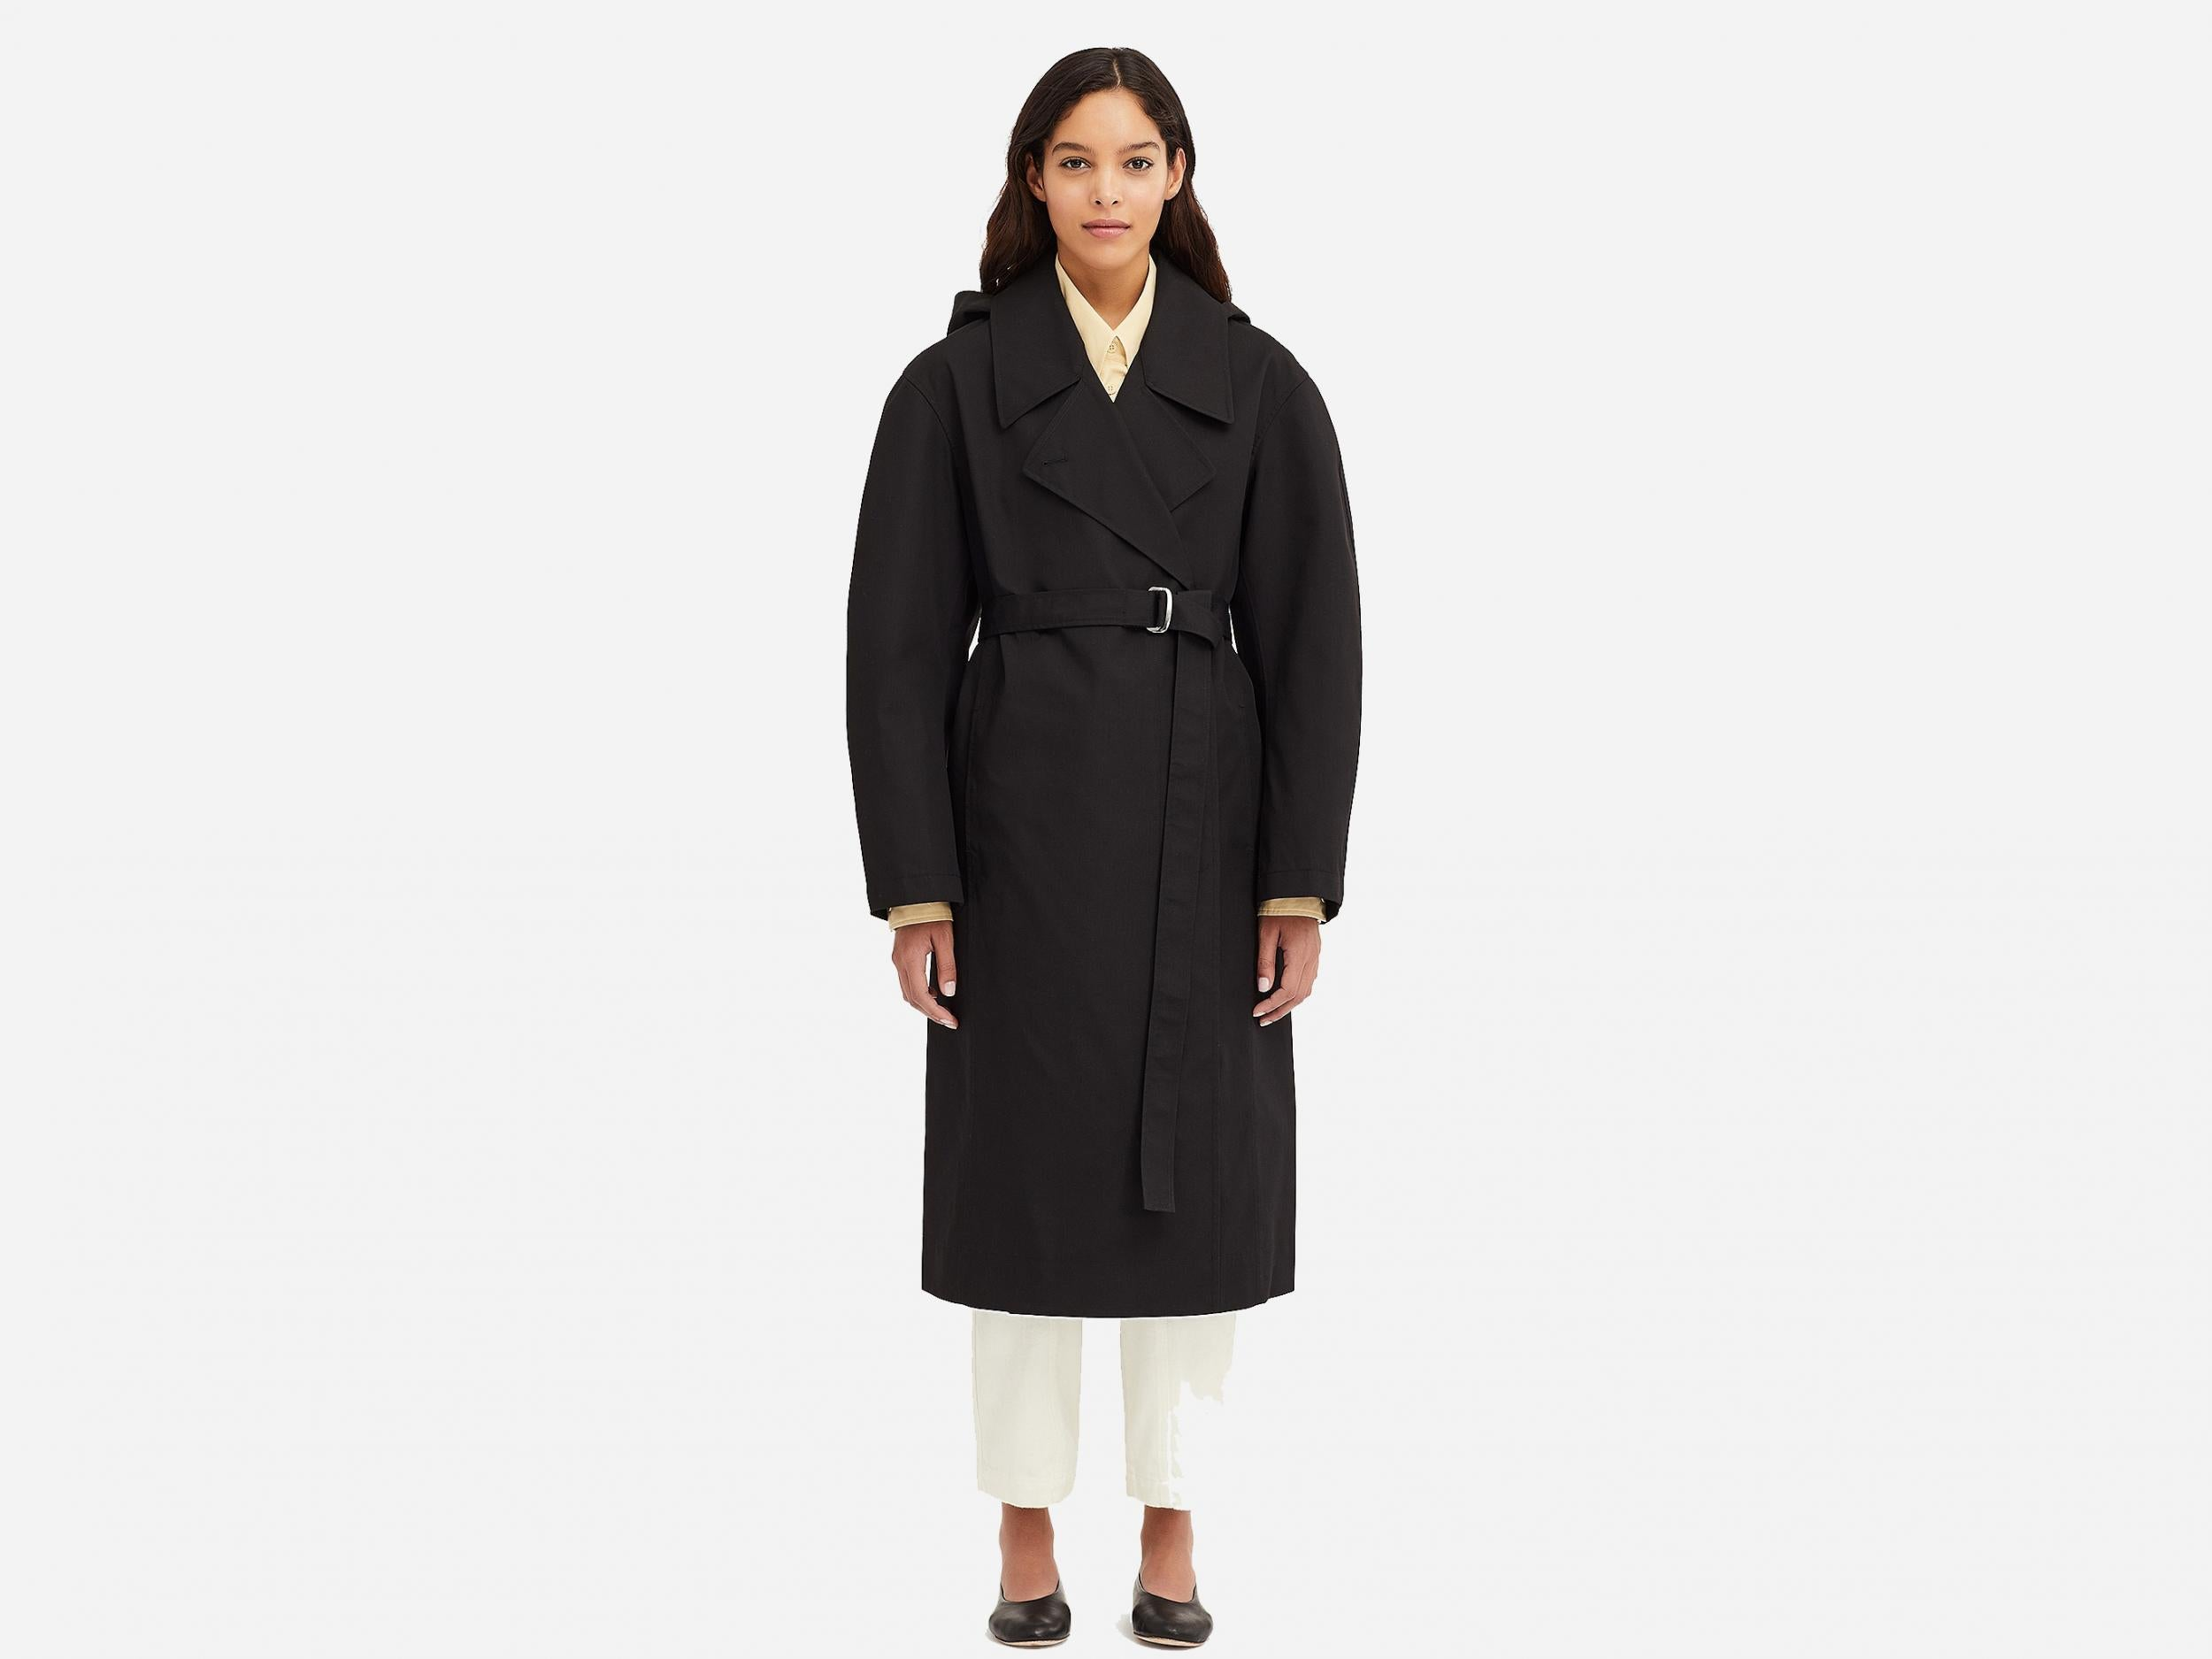 c6d0499c2 10 best women's trench coats | The Independent